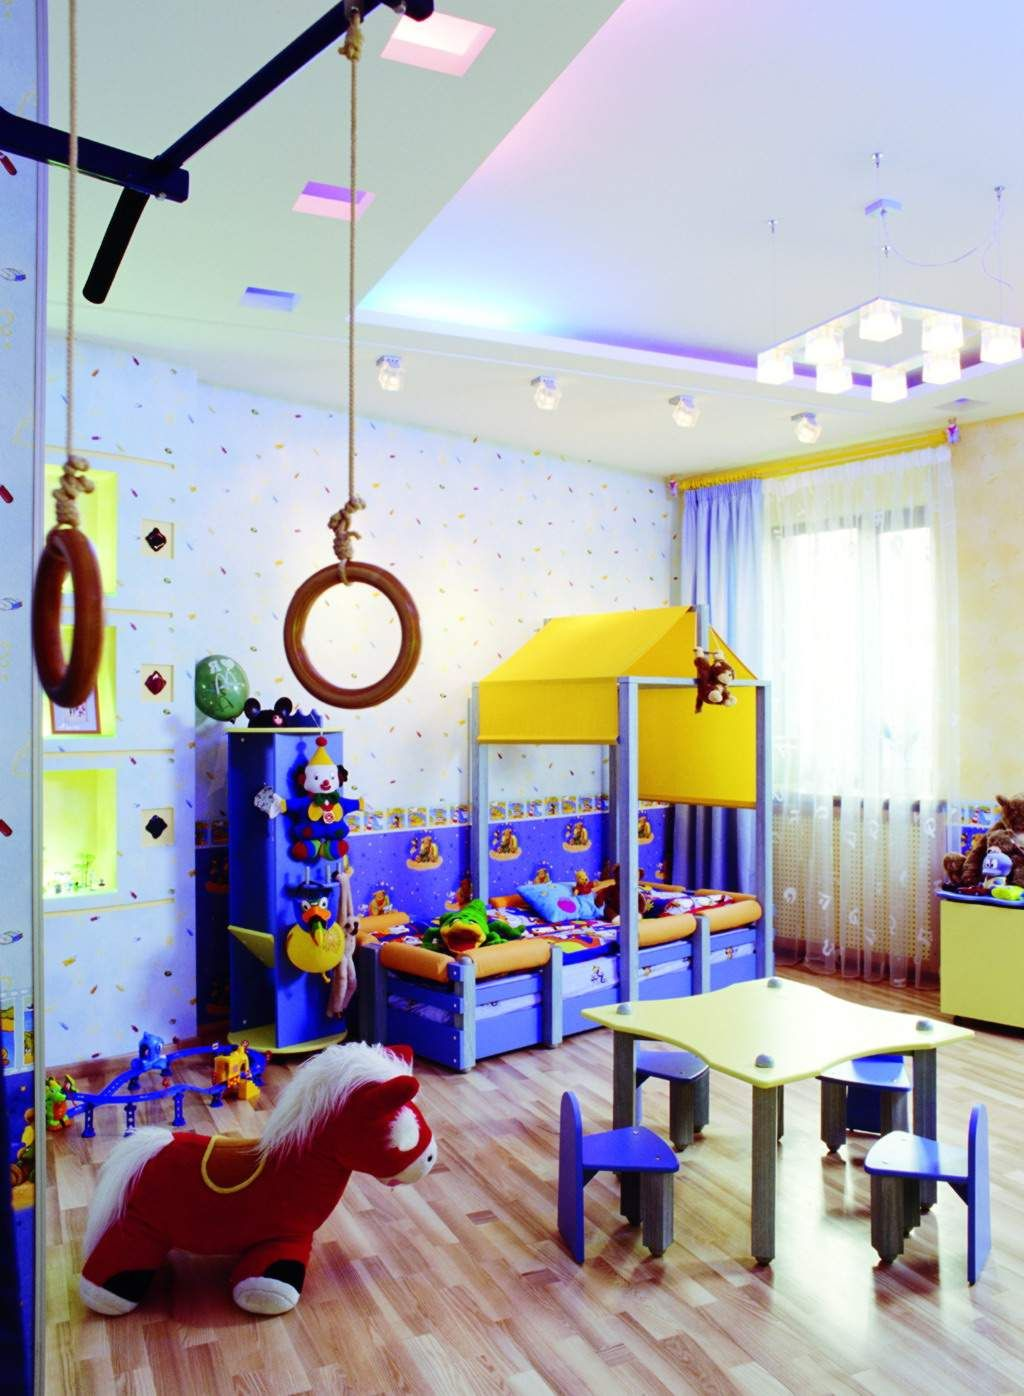 Kids bedroom kids room interior design with play and learn for Childrens bedroom ideas girl